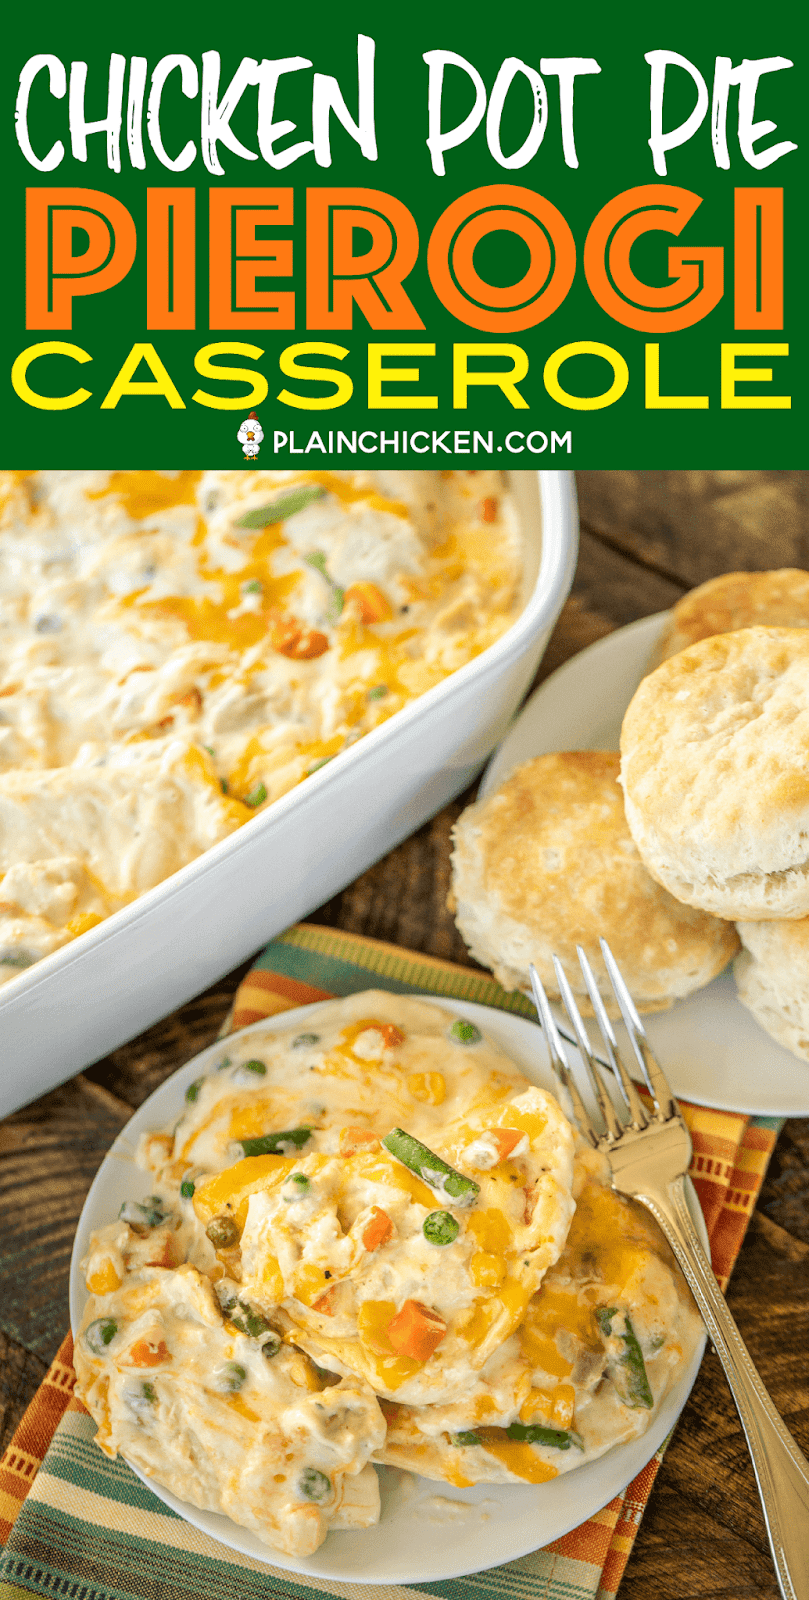 Chicken Pot Pie Pierogi Casserole - comfort food at its best! All you need is a few biscuits and dinner is done! Can make ahead of time and refrigerate or freeze for later. Pierogis, cream of chicken soup, sour cream, mixed vegetables, cheddar cheese, chicken, garlic, onion, salt and pepper. Everyone LOVES this easy casserole. Even our picky eaters cleaned their plate. #casserole #chicken #chickenpotpie